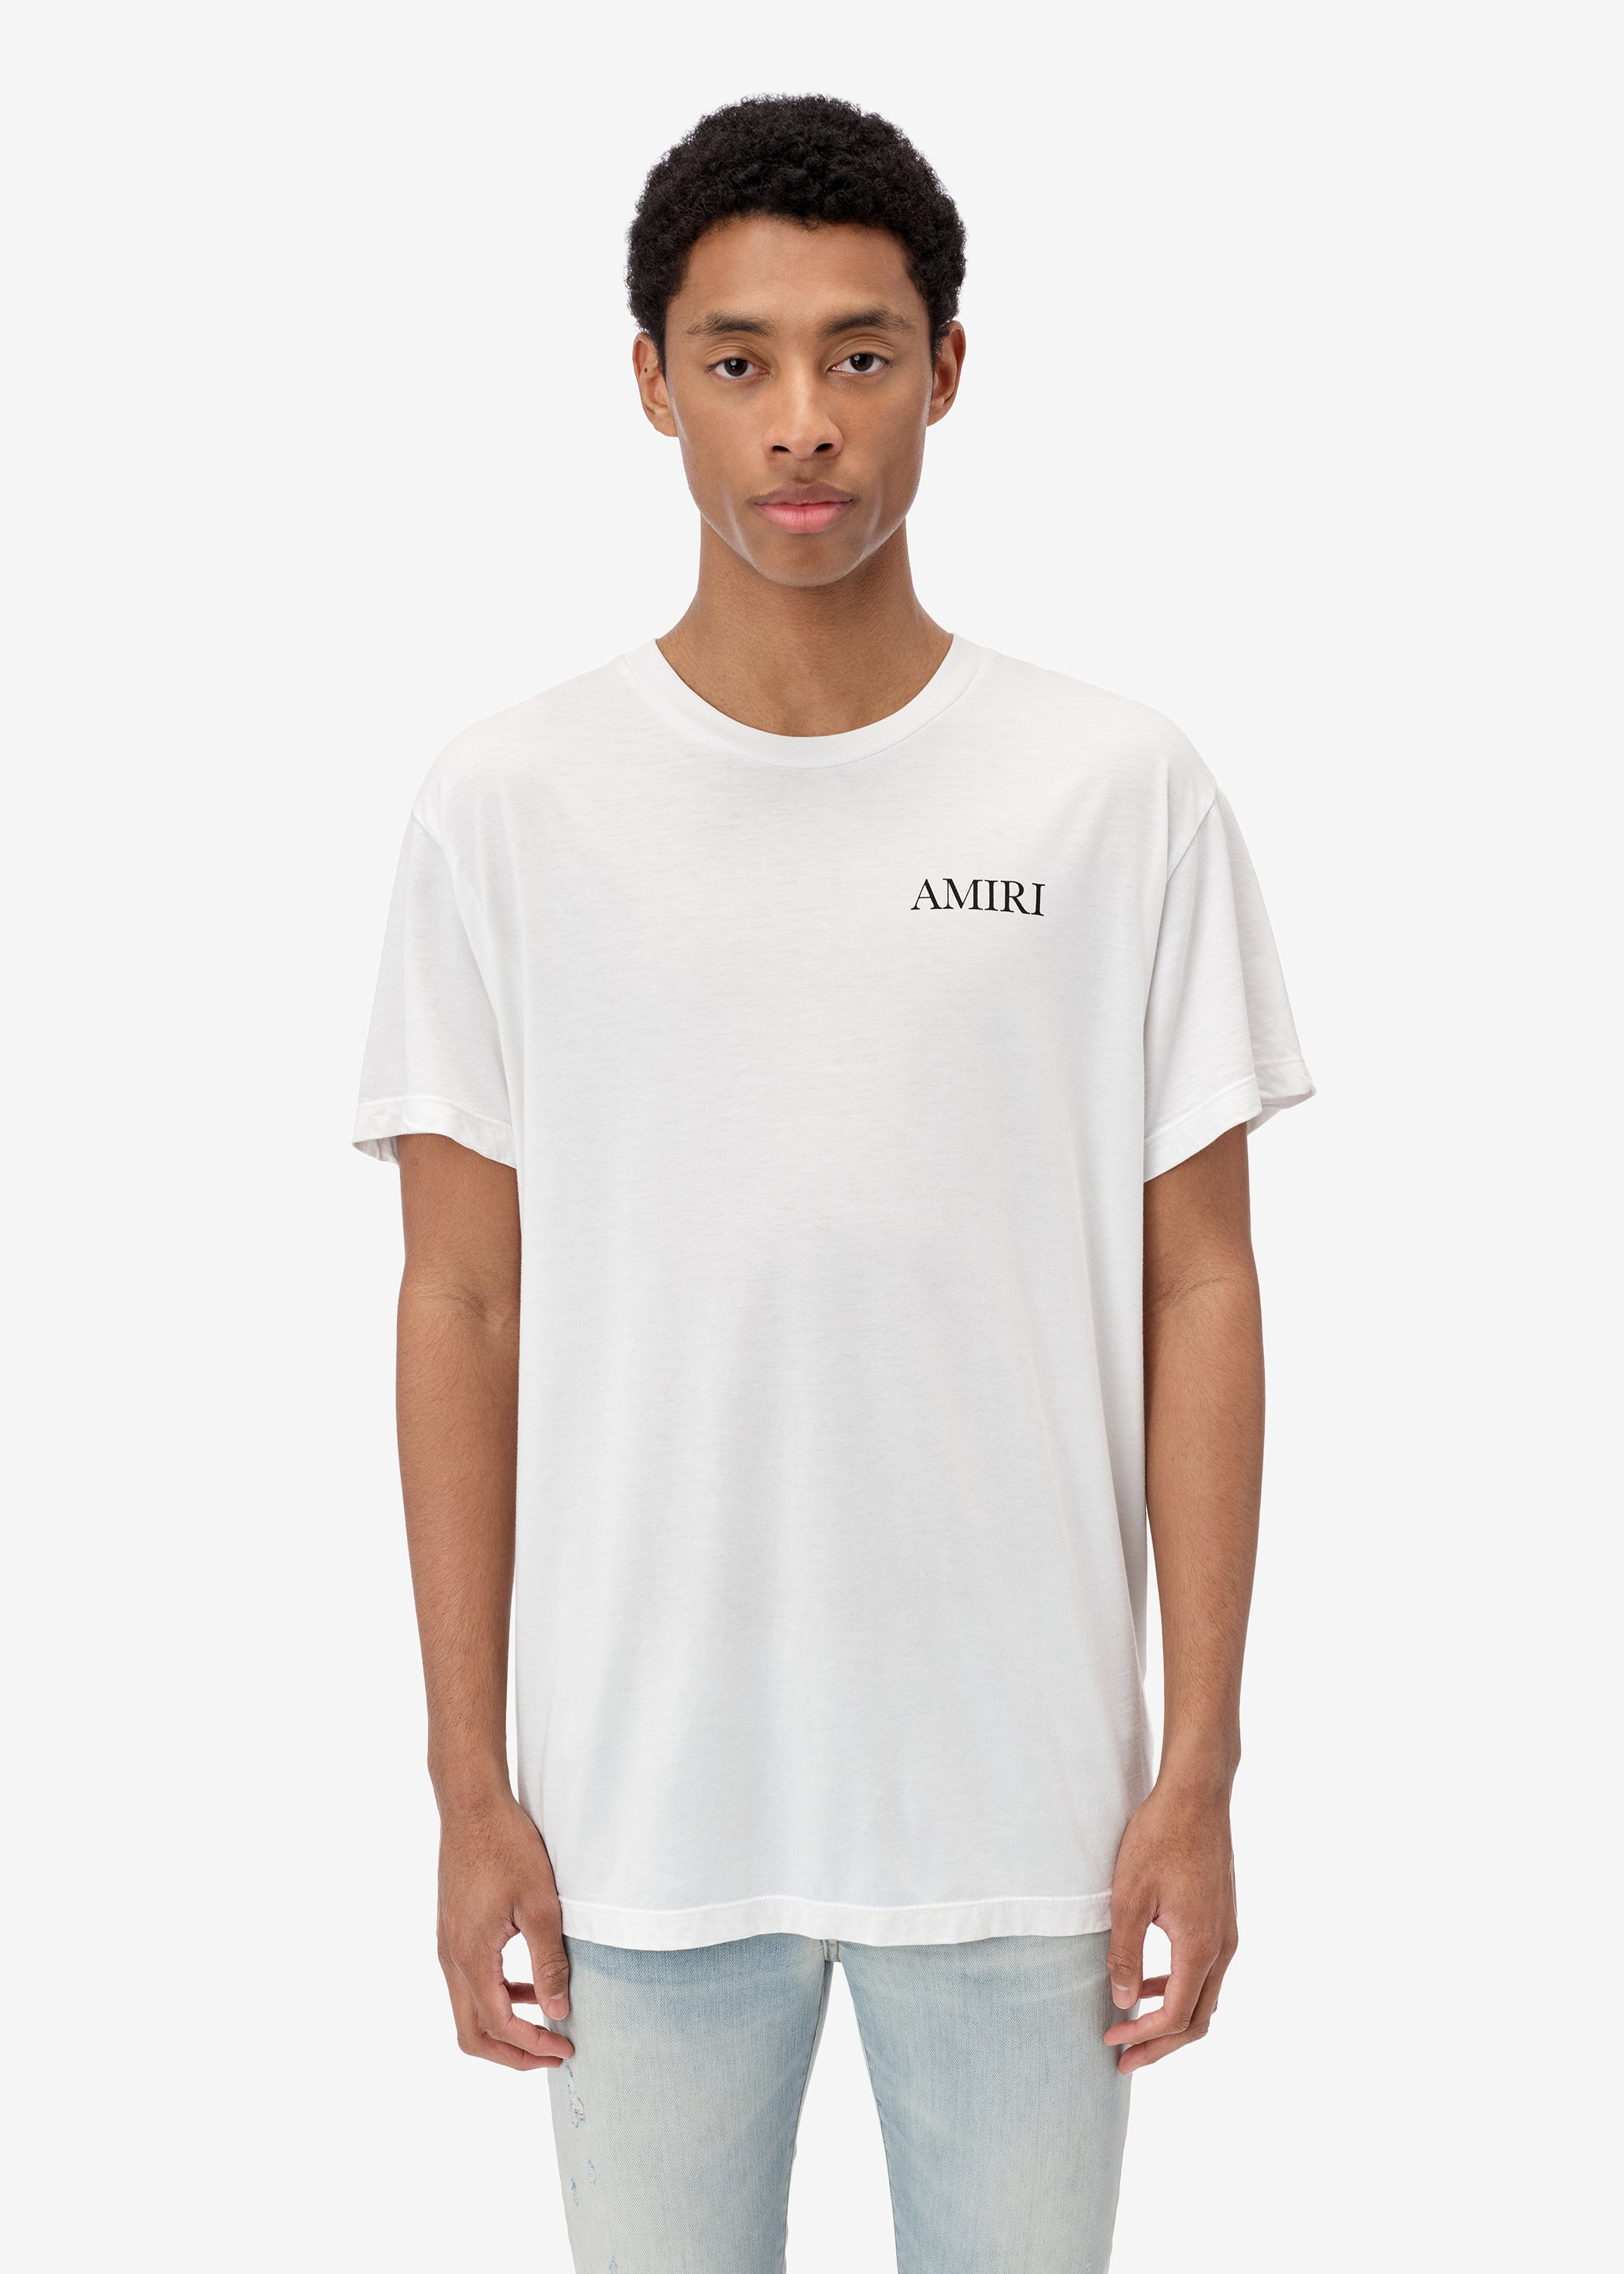 banana-tree-tee-white-image-1